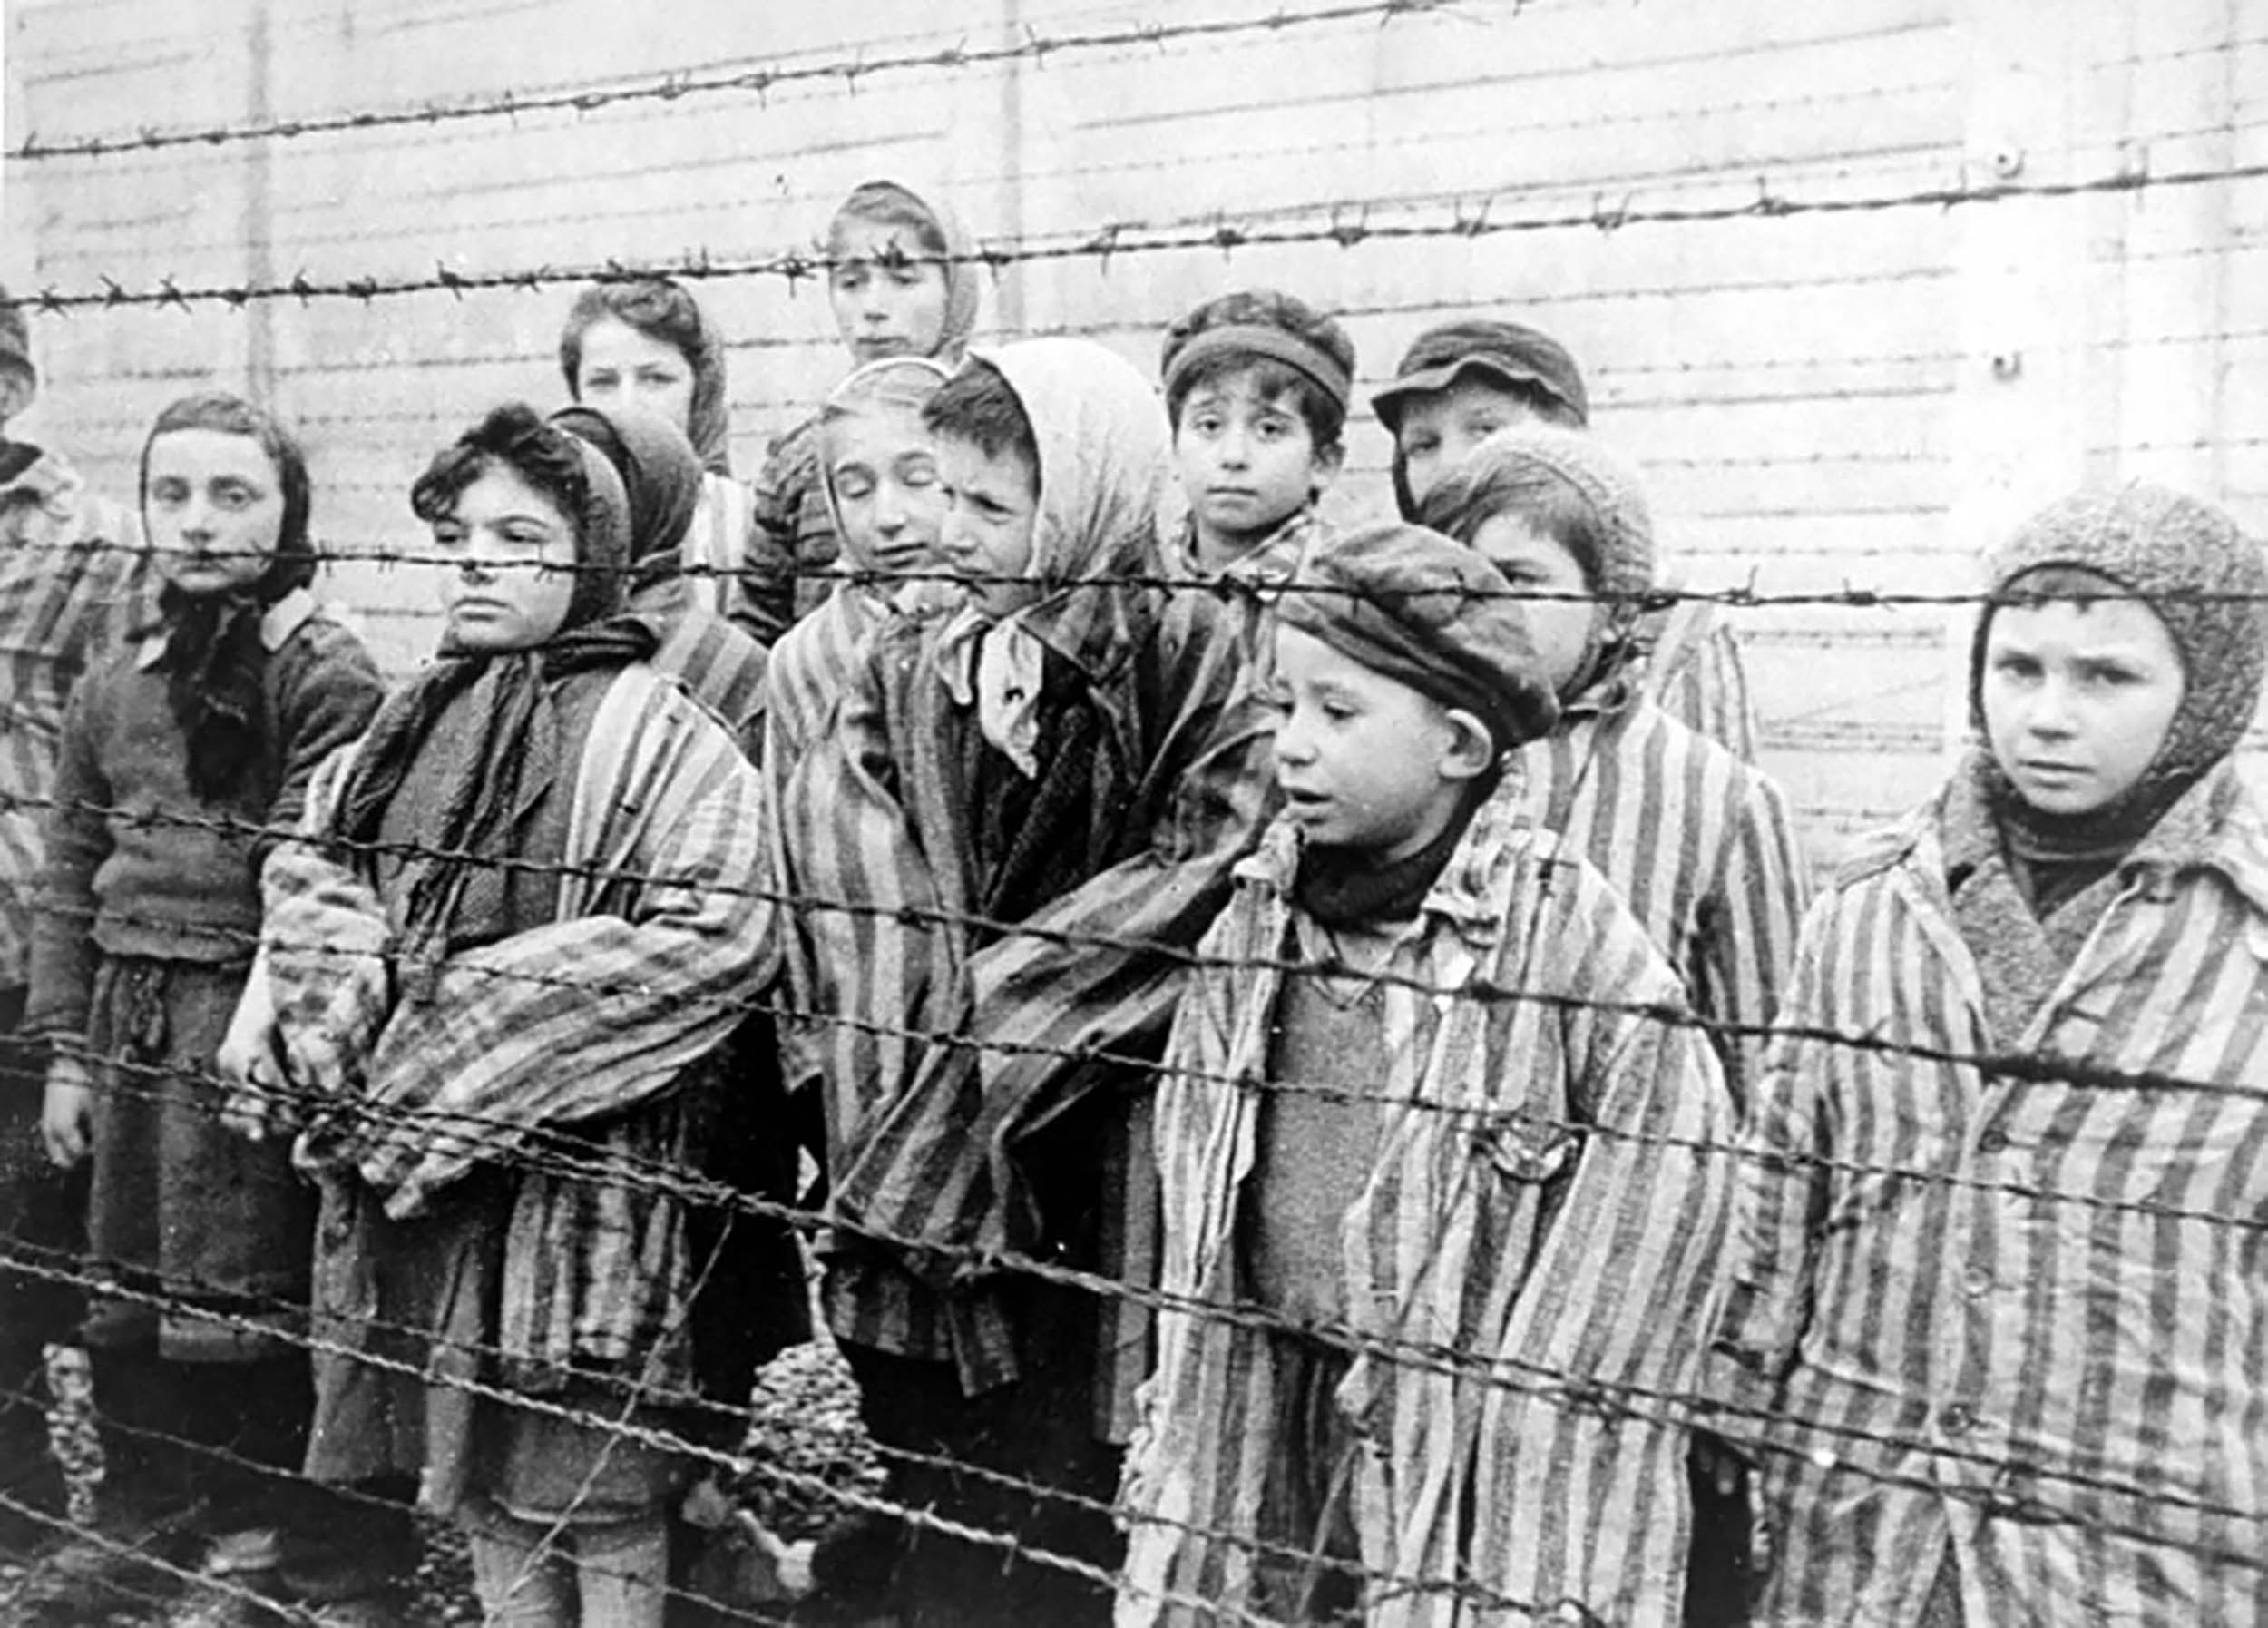 ©United States Holocaust Memorial Museum, courtesy of Belarusian State Archive of Documentary Film and Photography